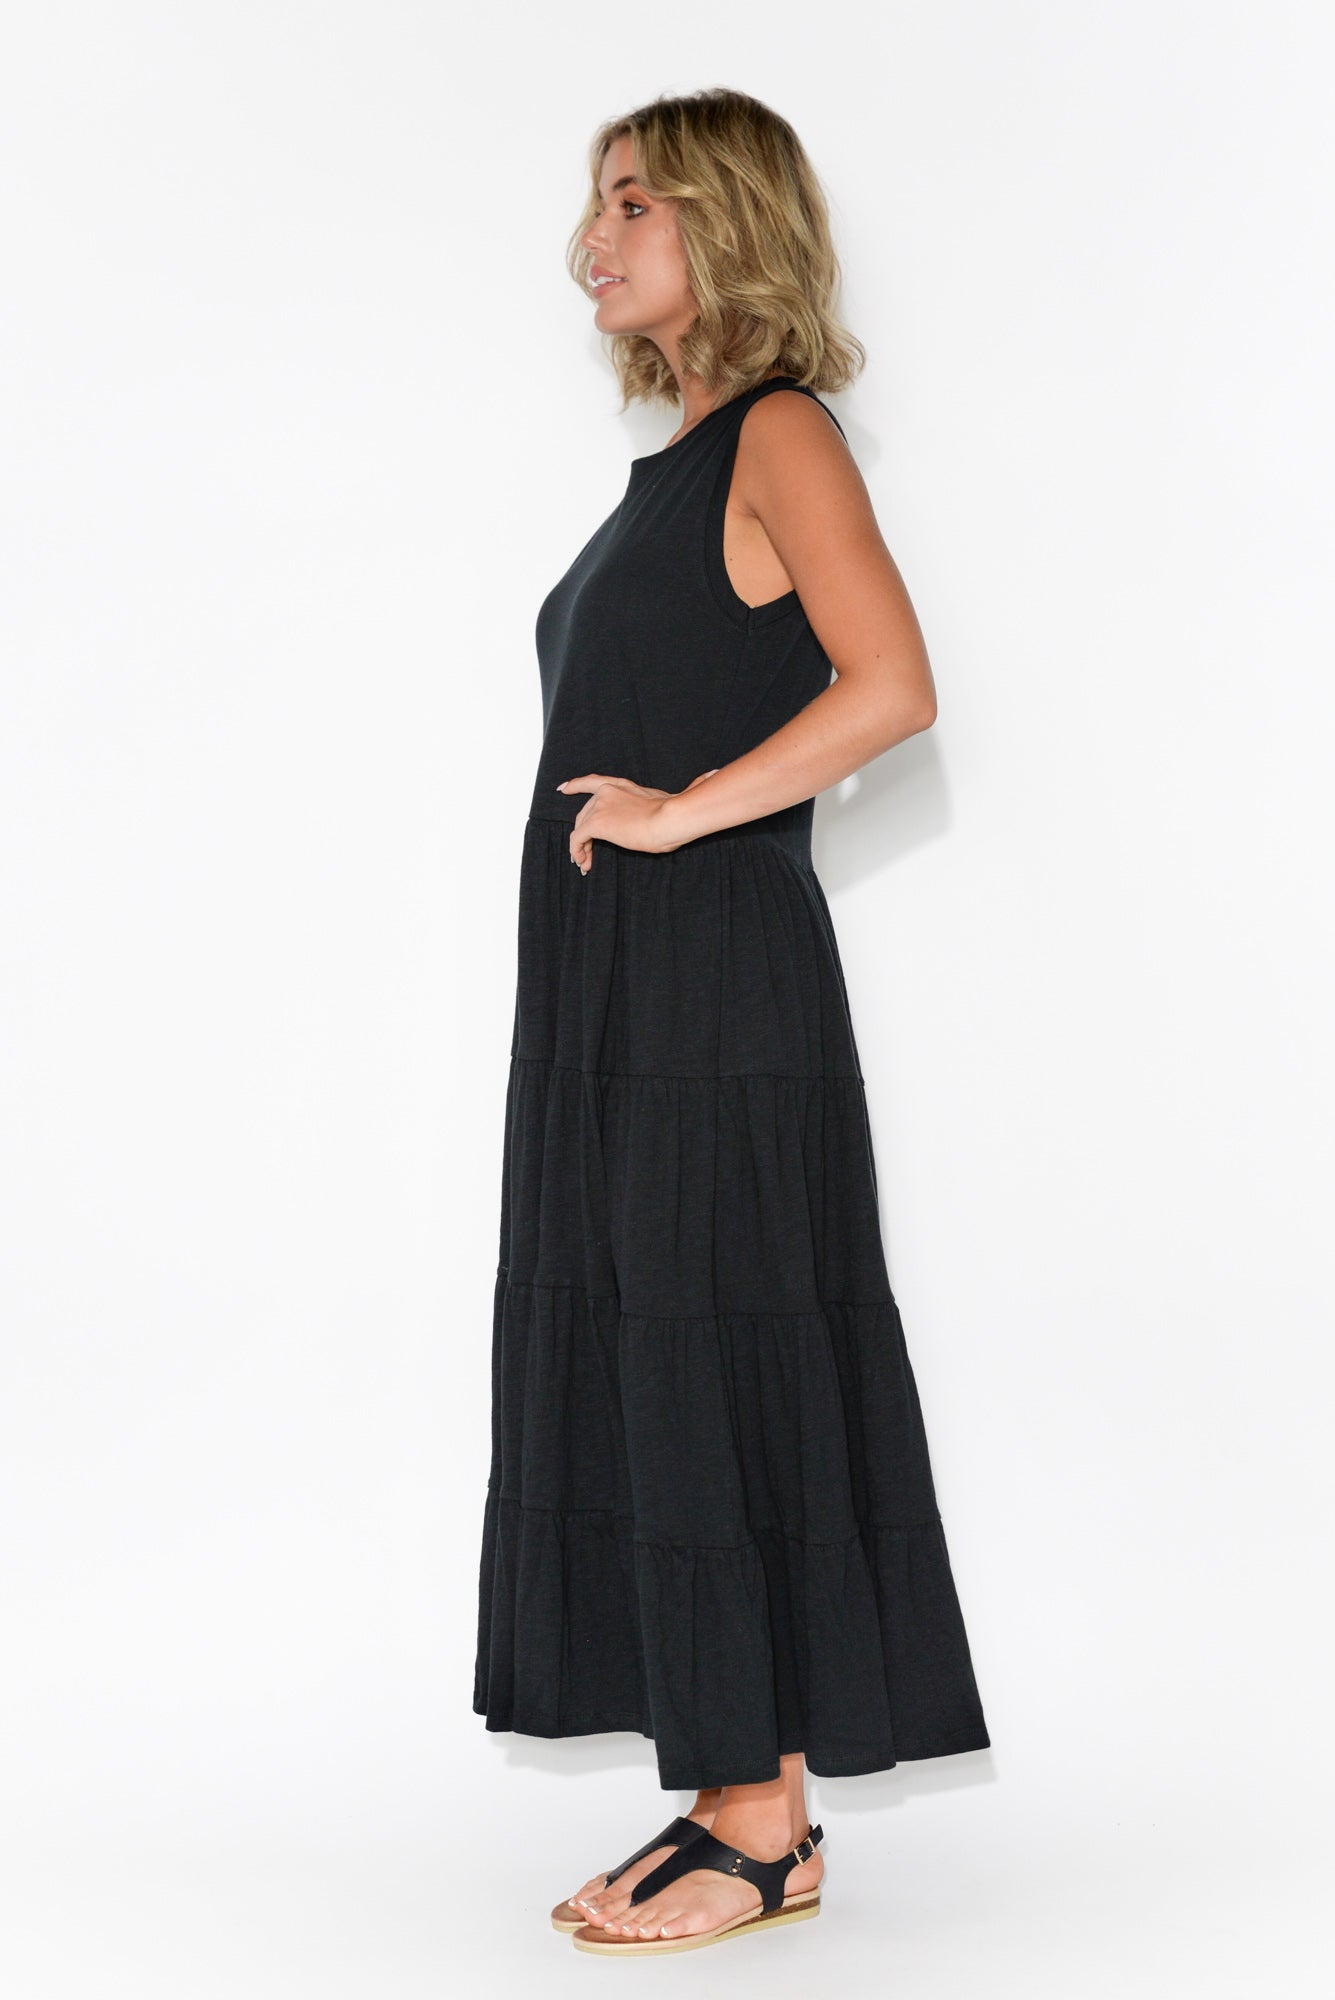 Saskia Black Cotton Tiered Maxi Dress